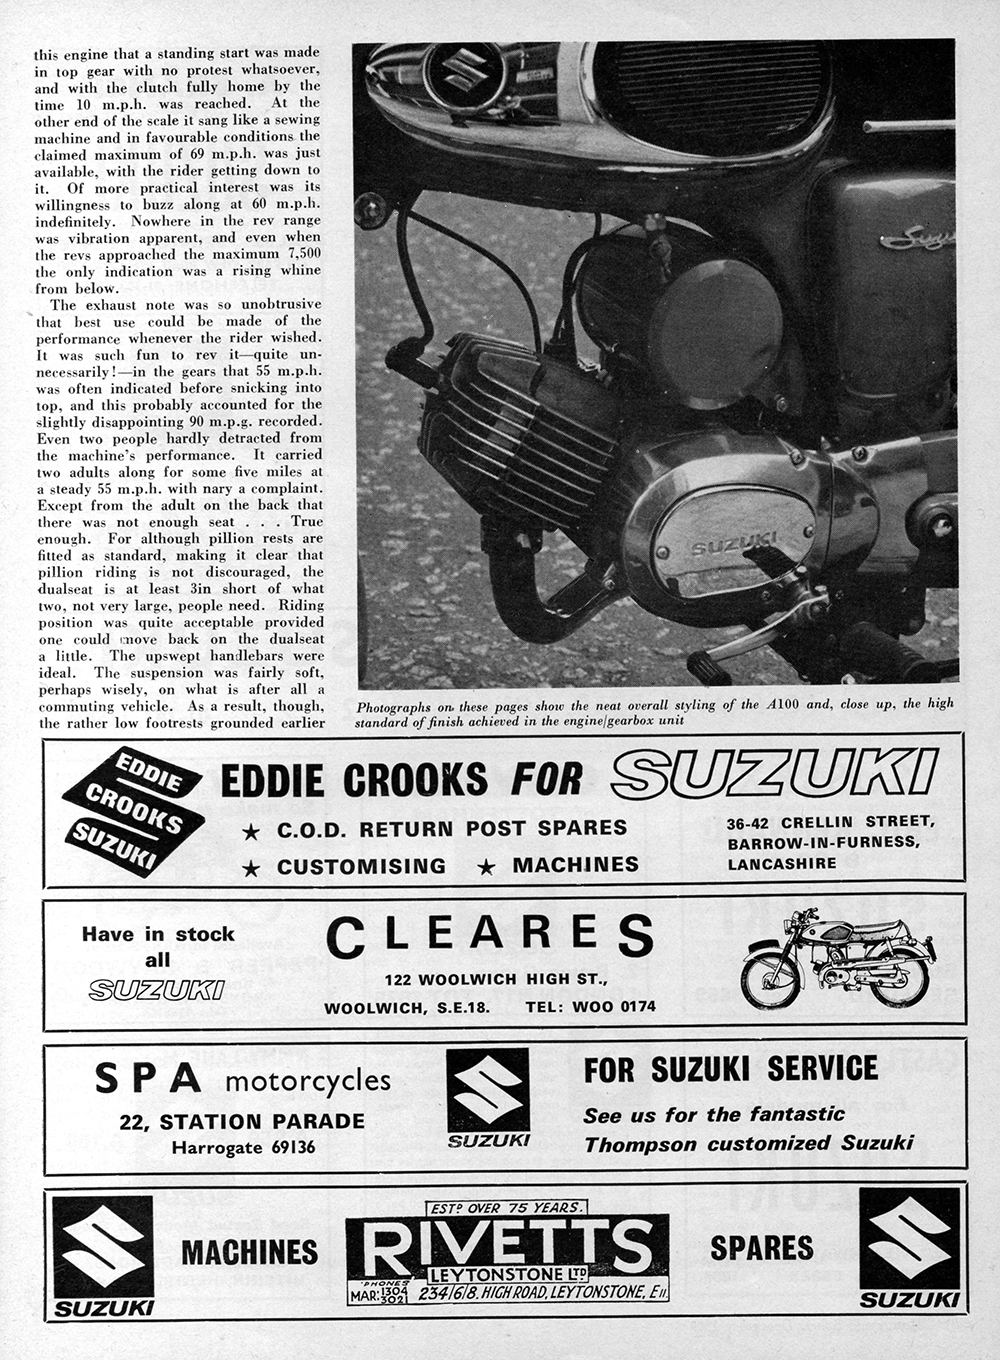 1970 Suzuki A100 road test 3.jpg